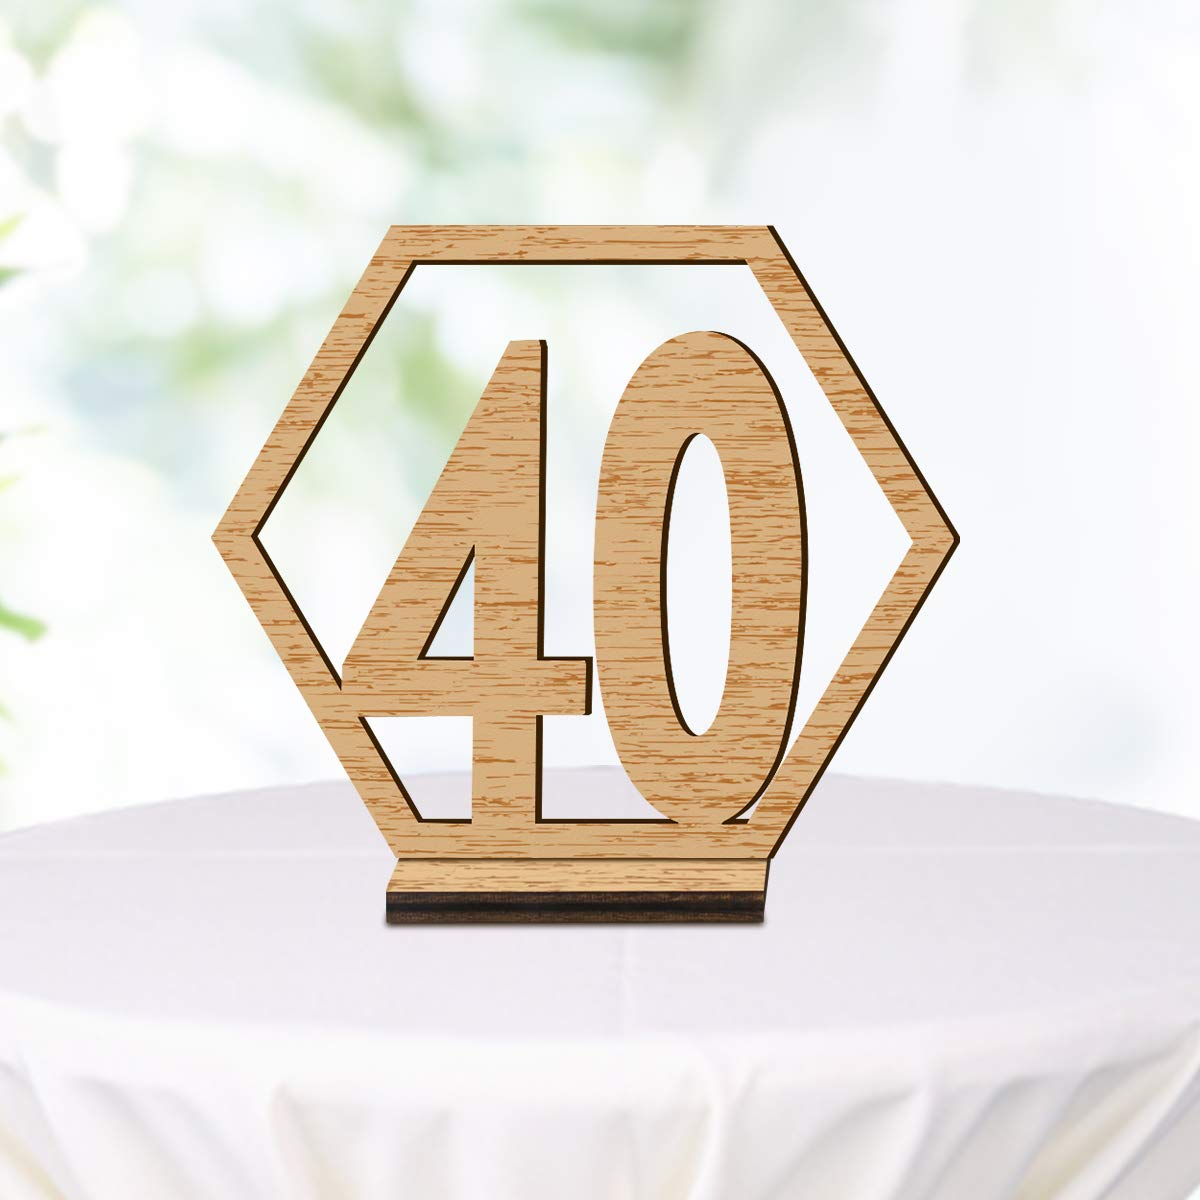 ElekFX Table Numbers 20 Pack NO.21-40 Wedding Wooden Desk Number Cards with Base Party Card Double Sided Design Table Holder for Wedding Reception and Decoration (M)